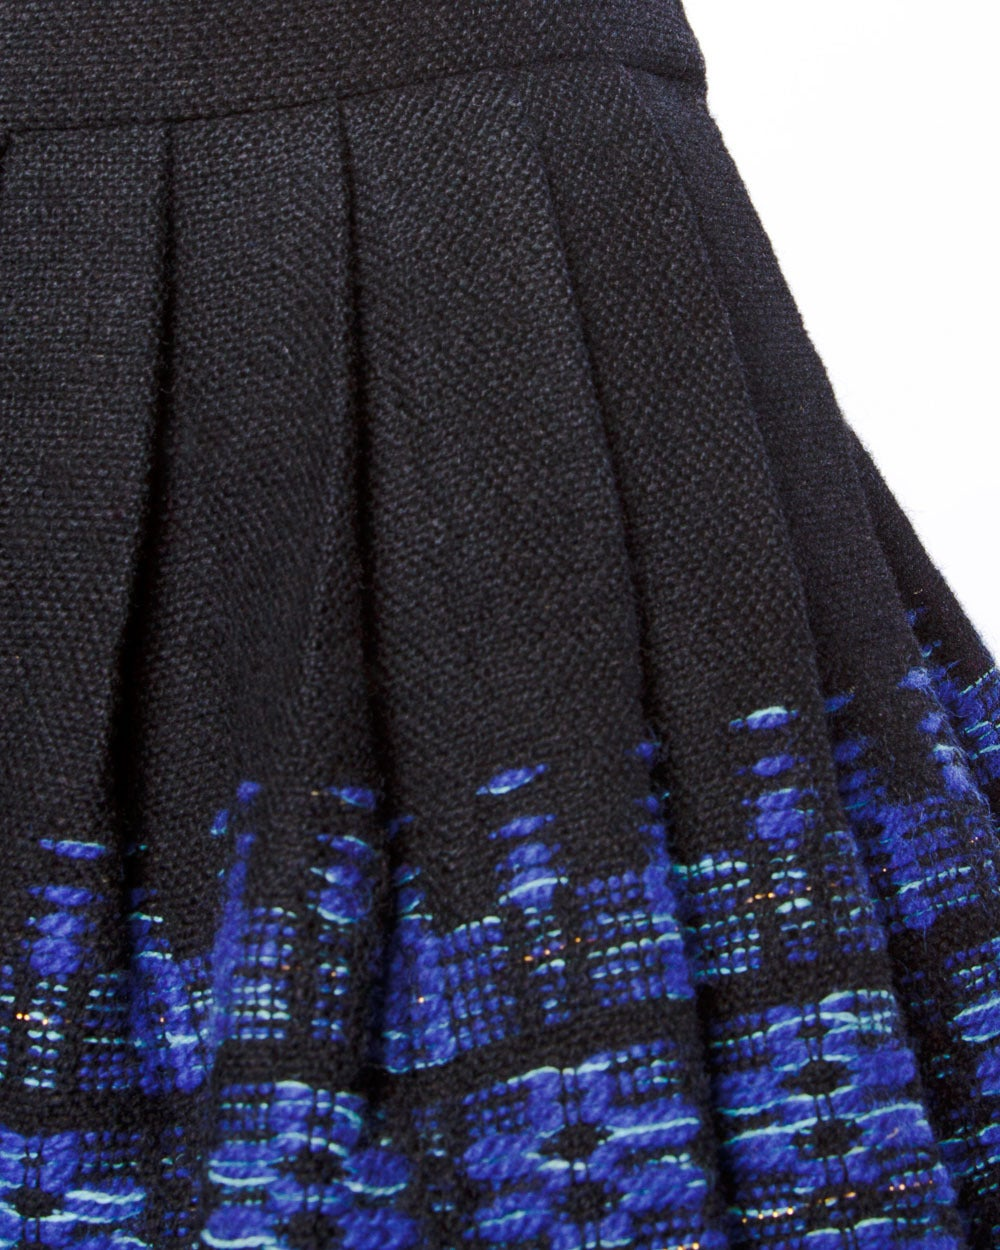 Vintage 1950s 50s Woven Textured Wool Pleated Full Sweep Skirt 3